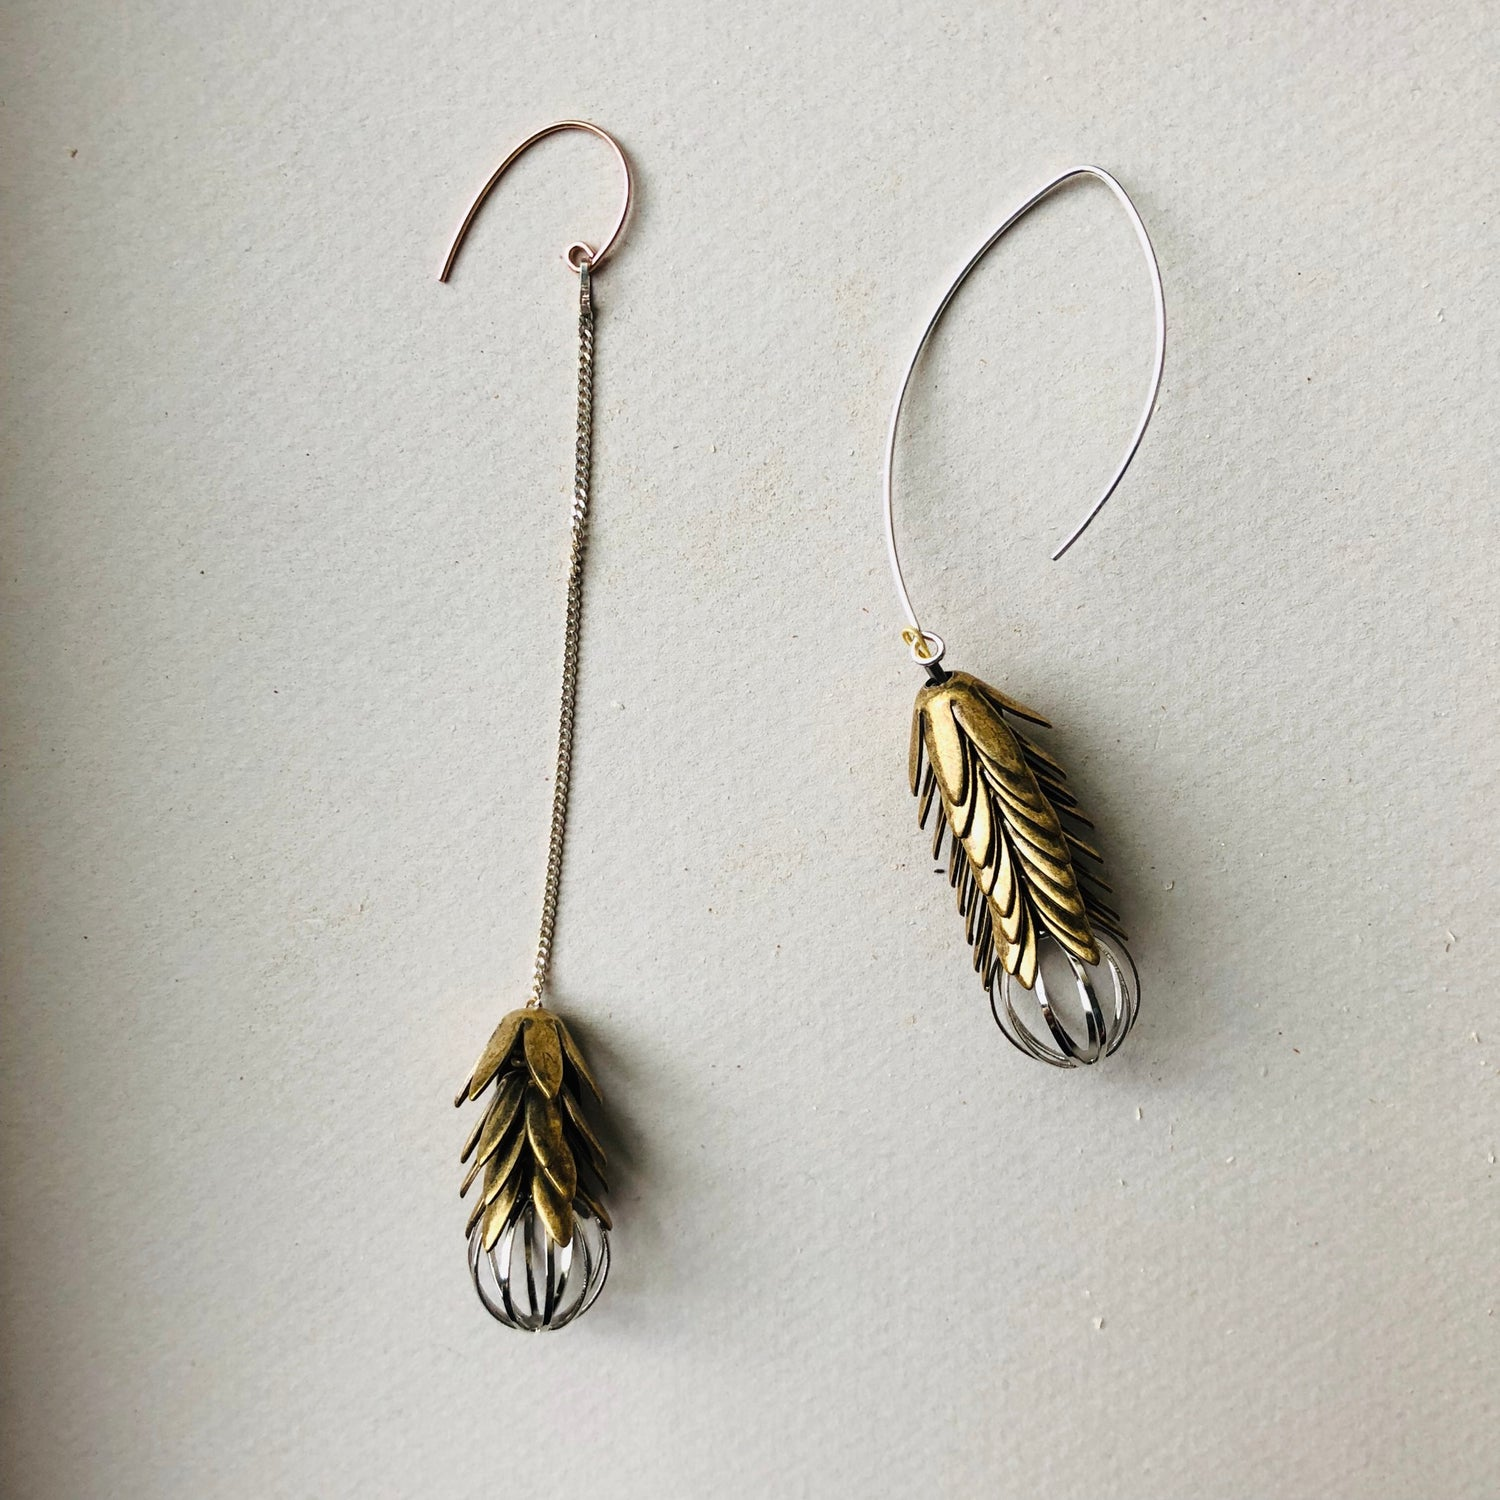 Image of Wildflower earrings